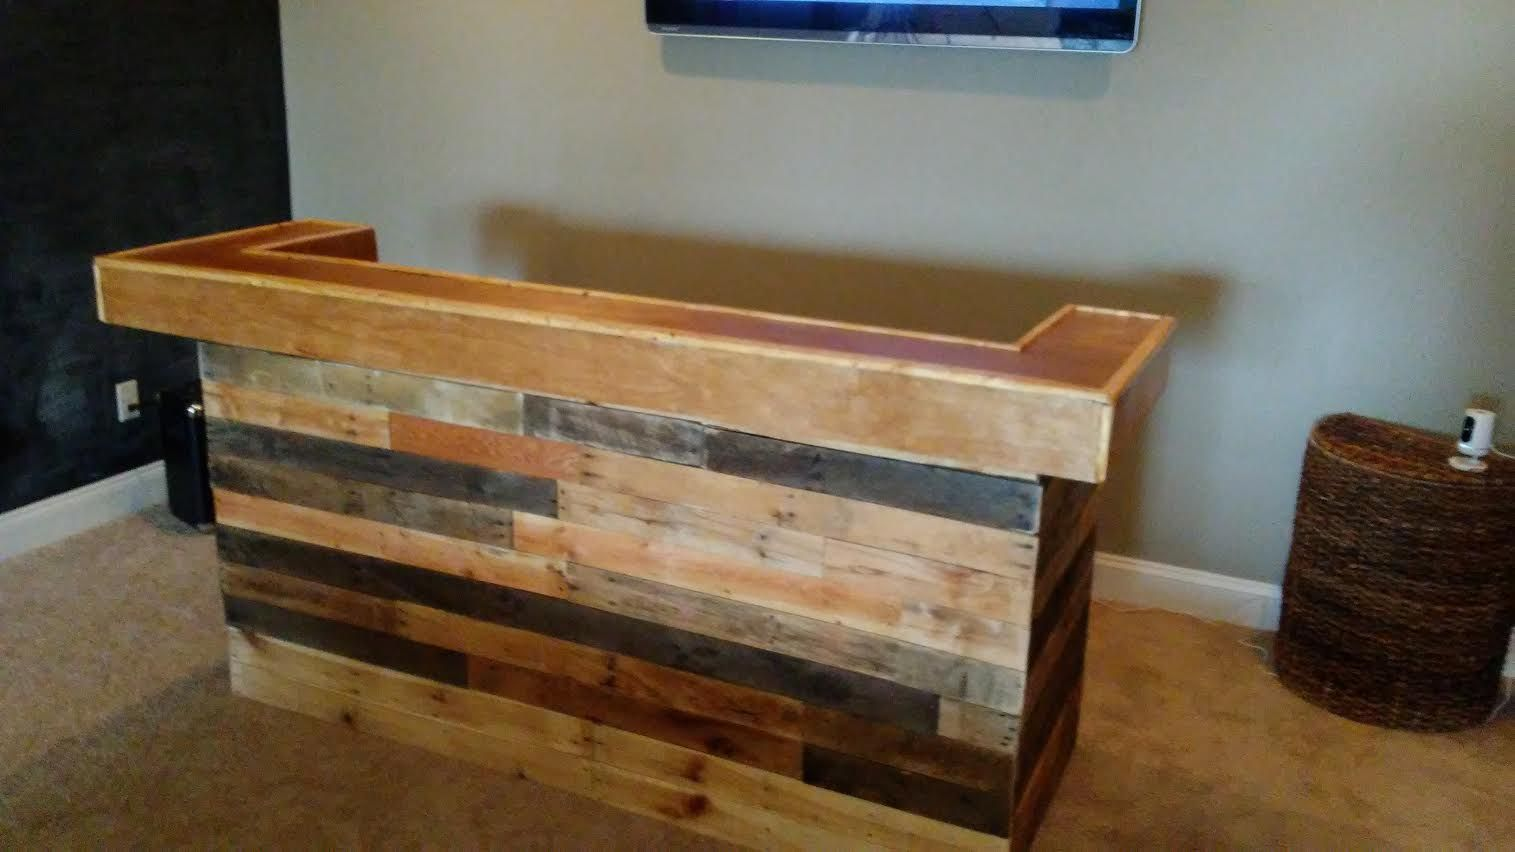 Buy A Custom Pallet Wood And Barn Wood Bars For Entertaining Made